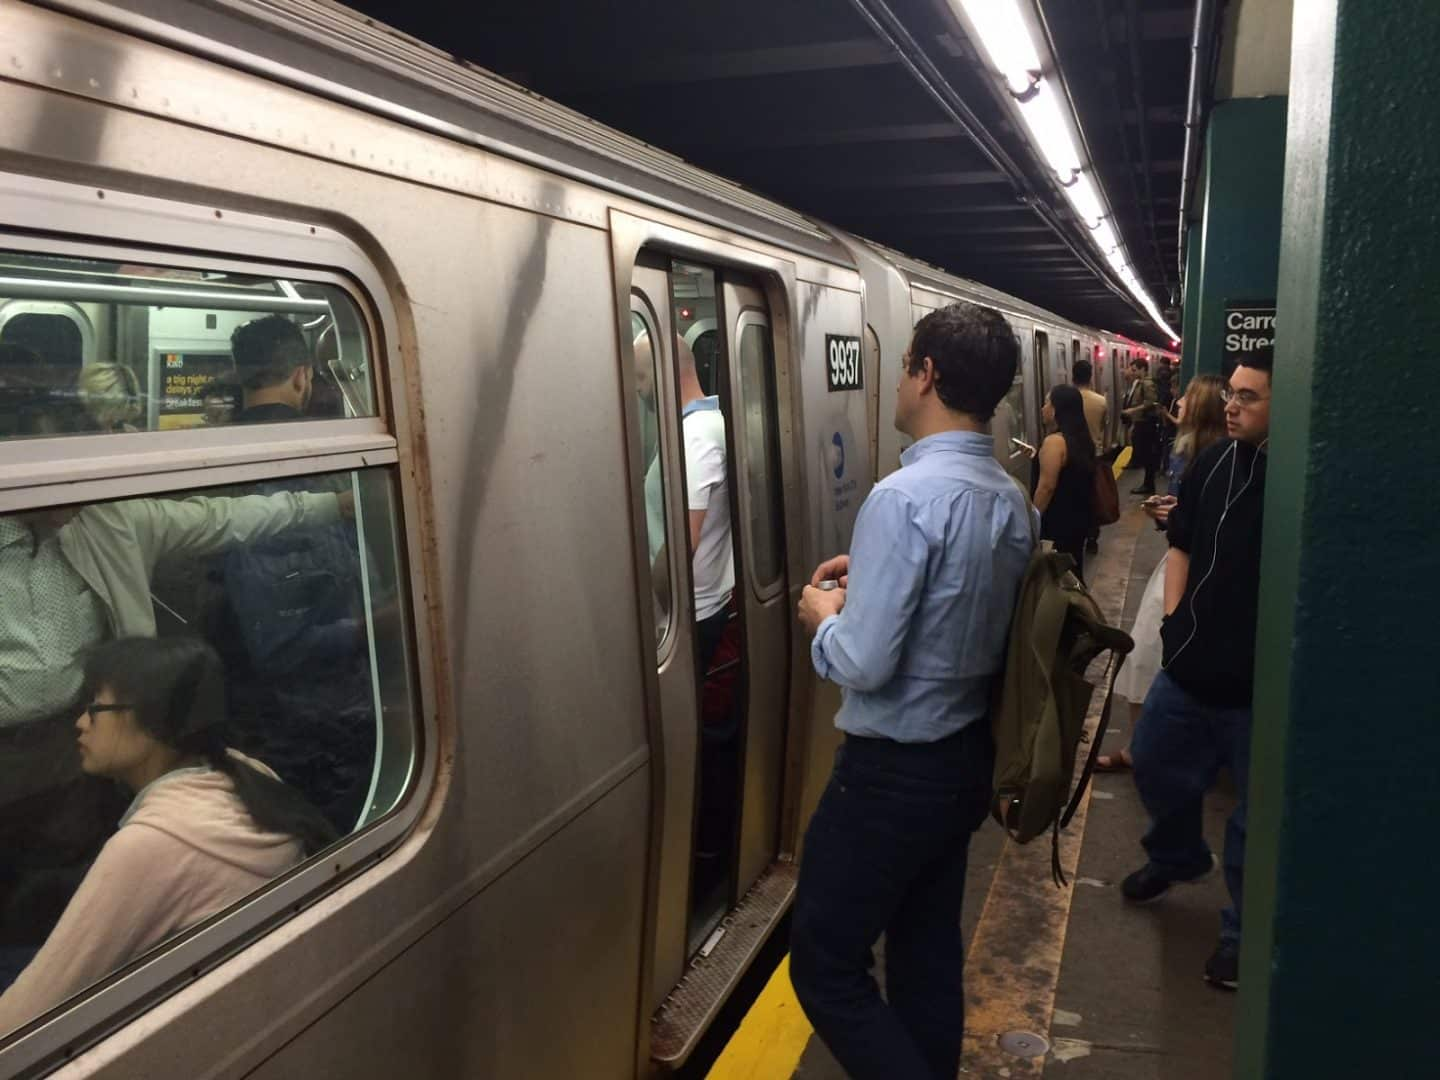 Monologue: Why You Should Join This Packed Subway Car